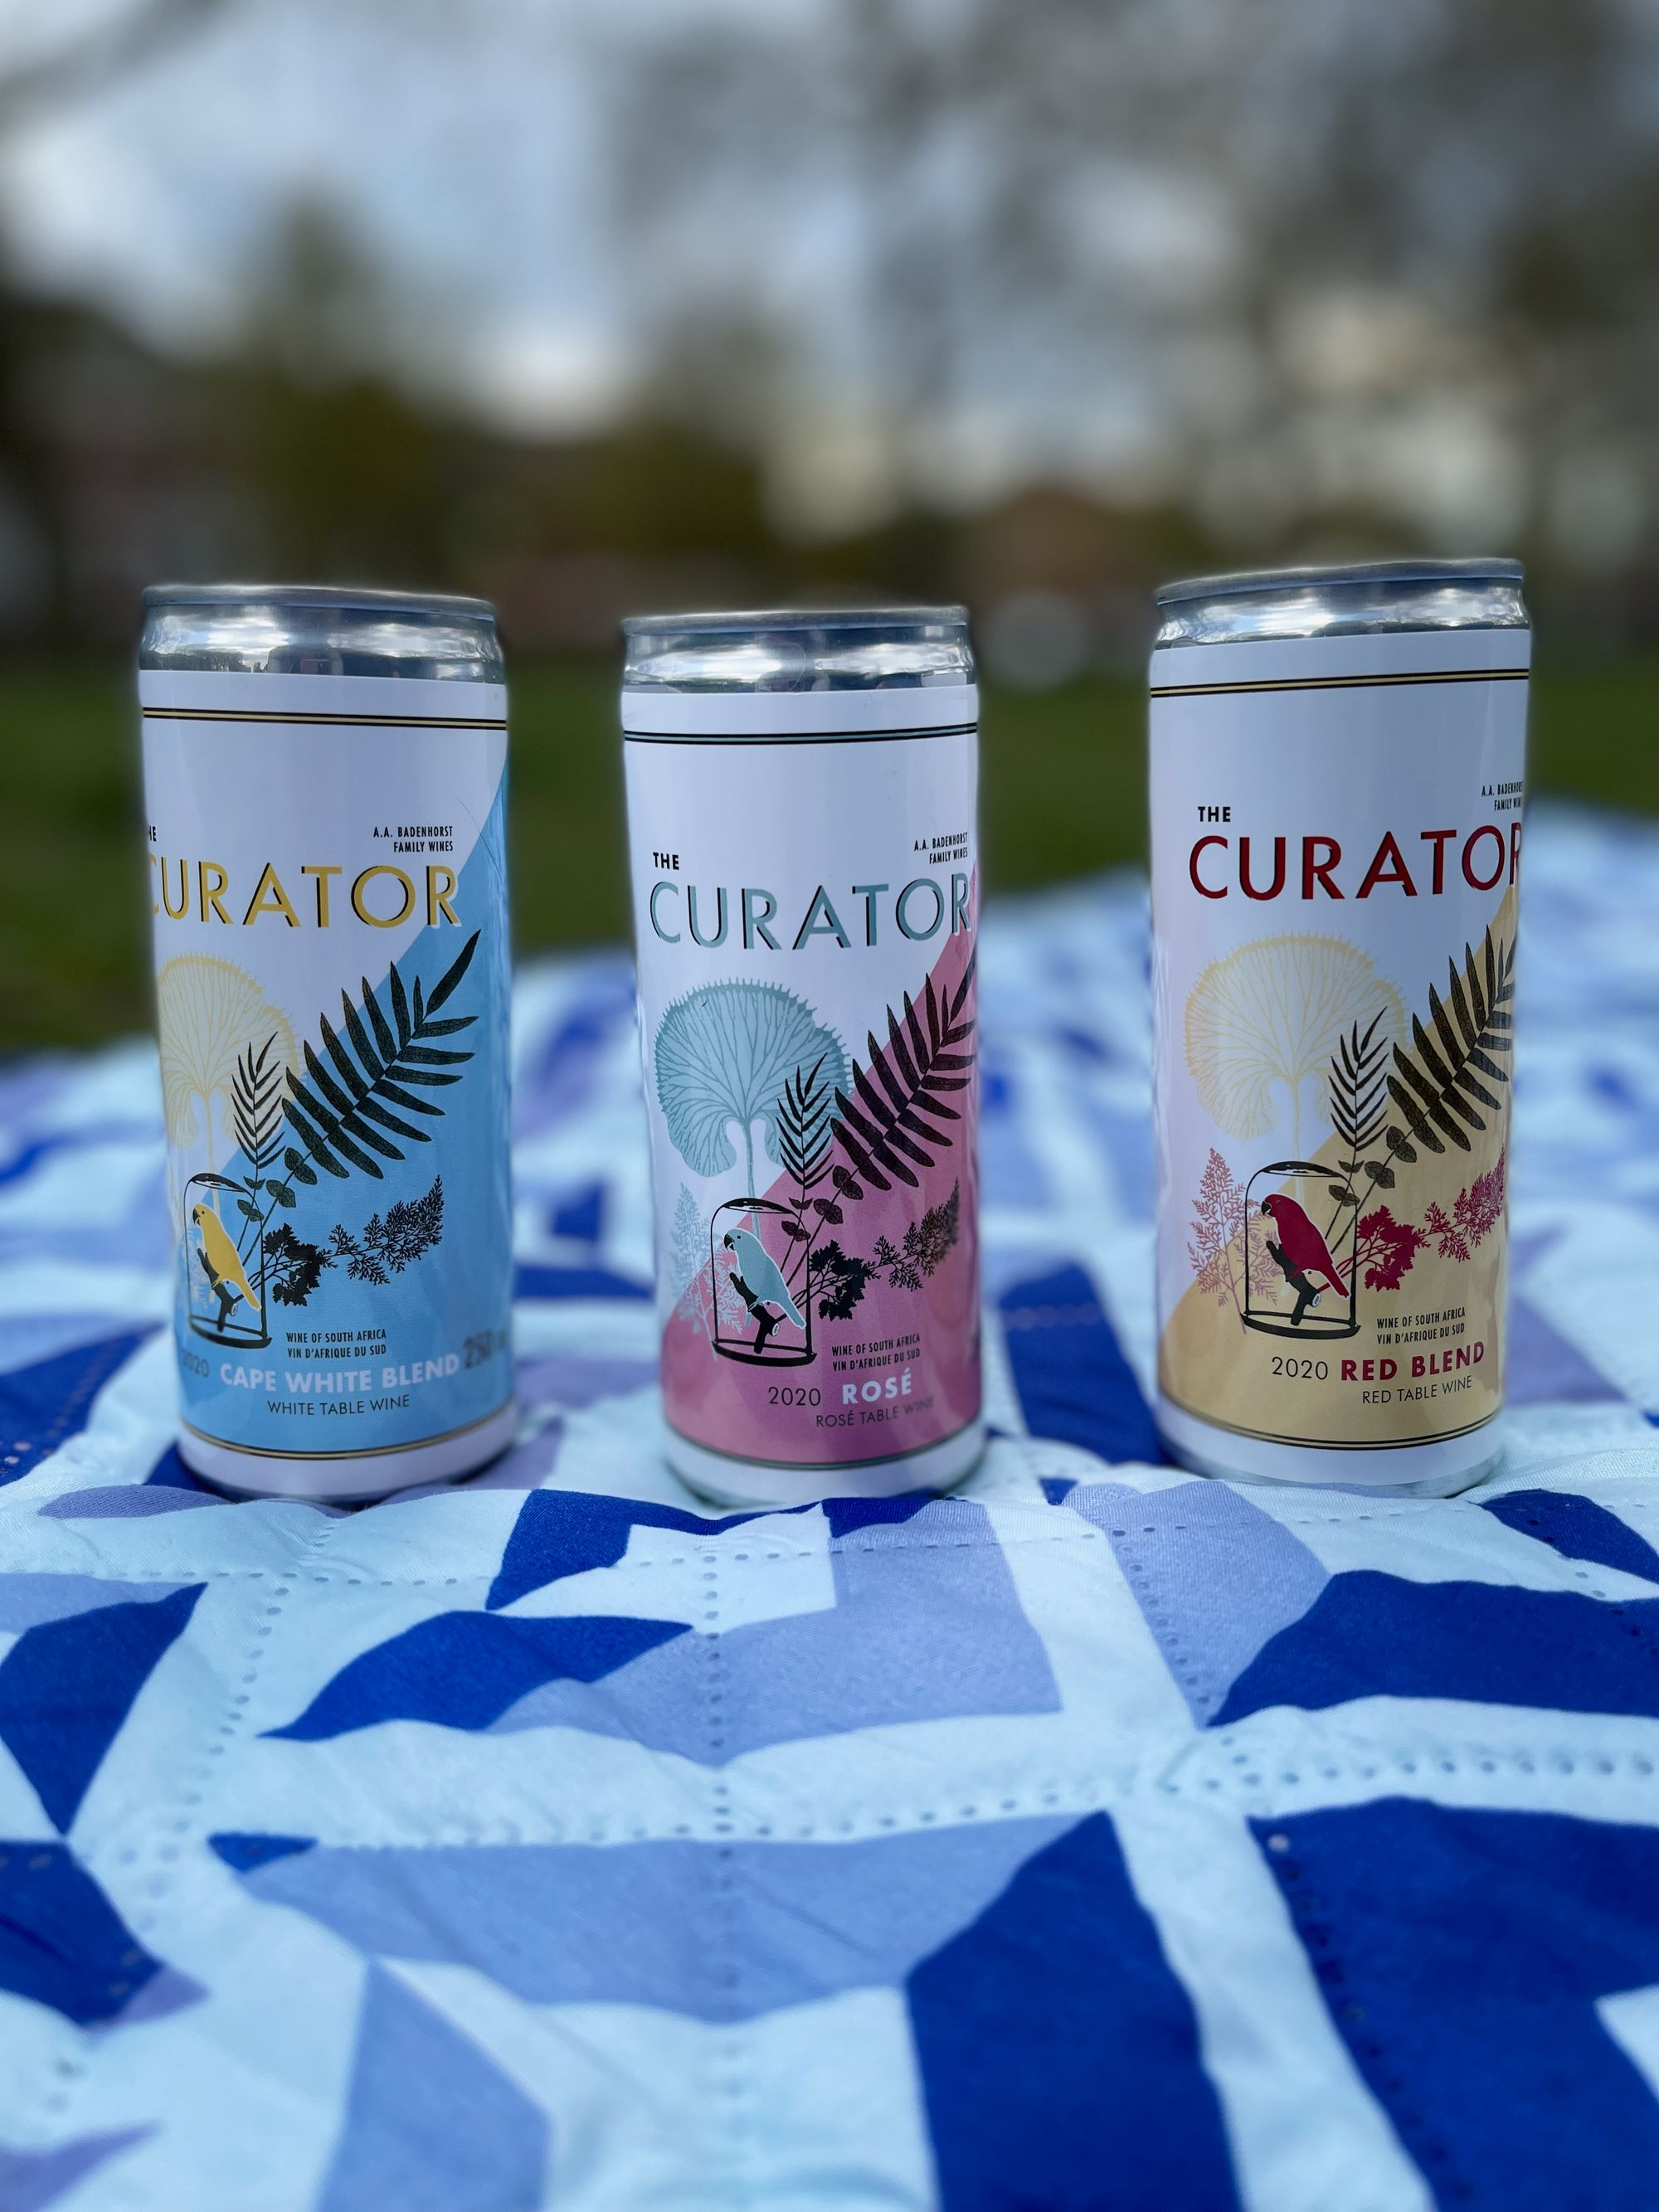 The Curator canned wines from AA Badenhorst